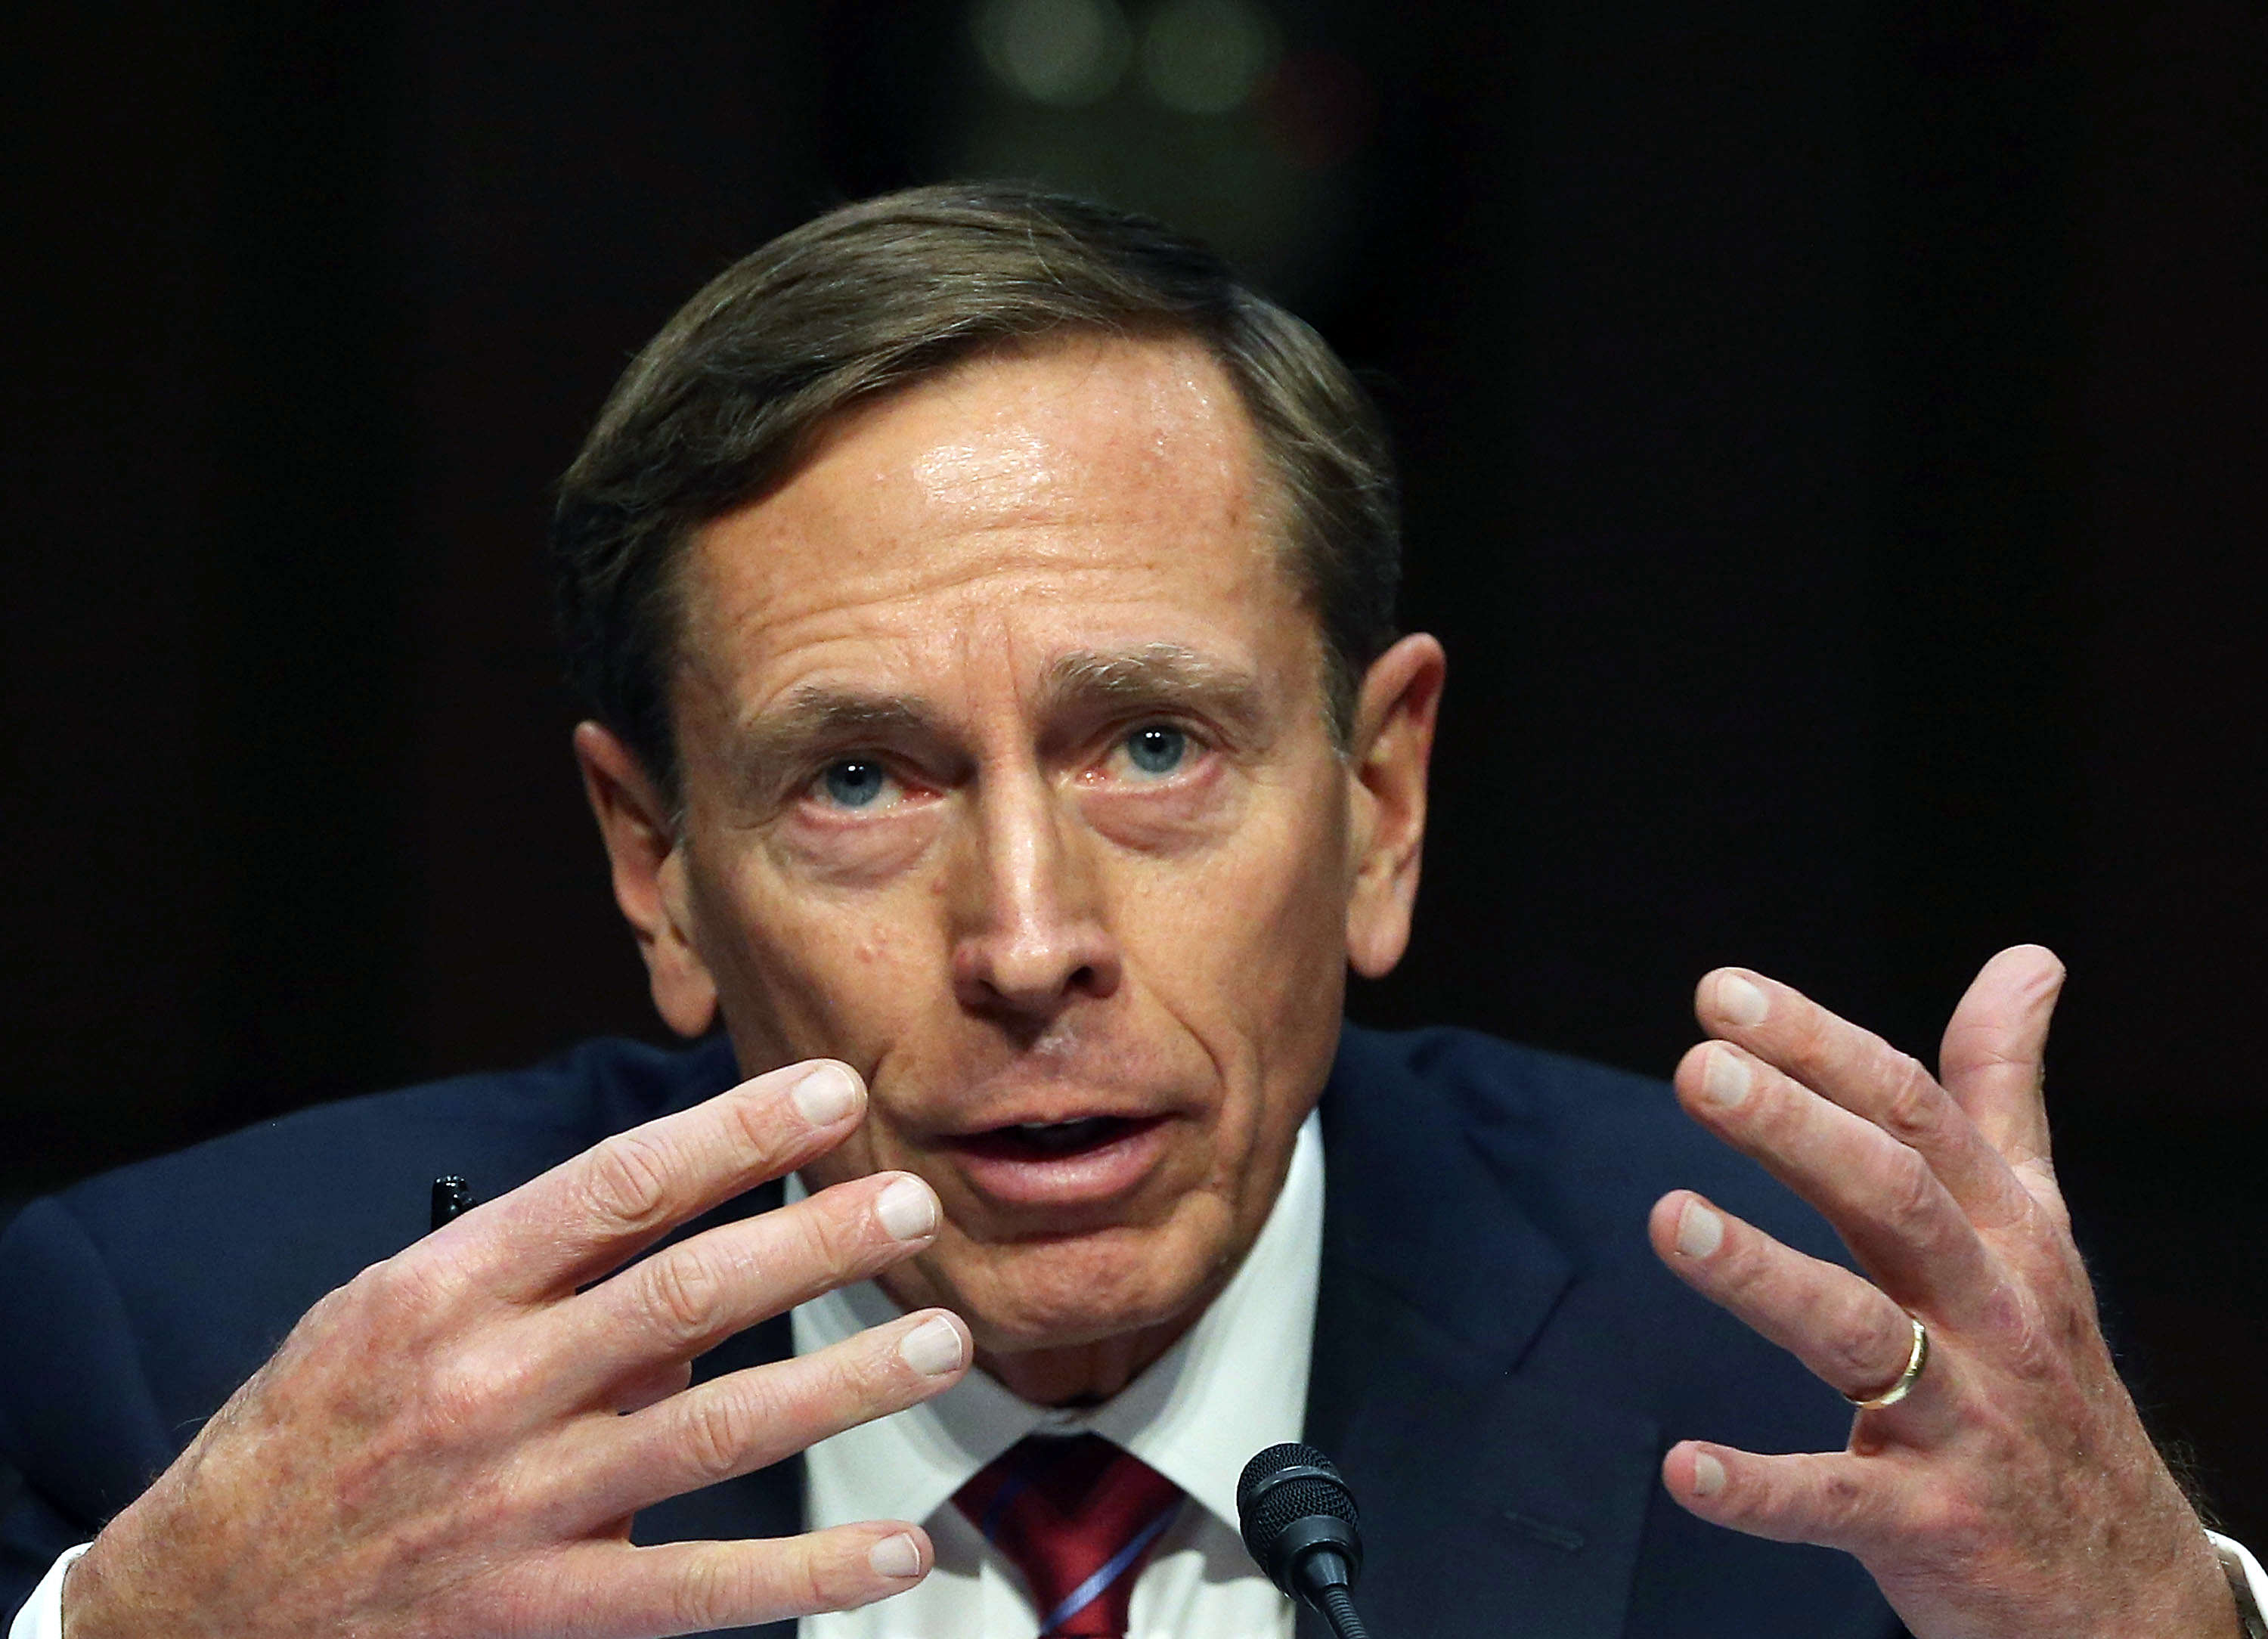 petraeus Heres What You Need To Know About Shadowy Global Elite Bilderberg Meeting